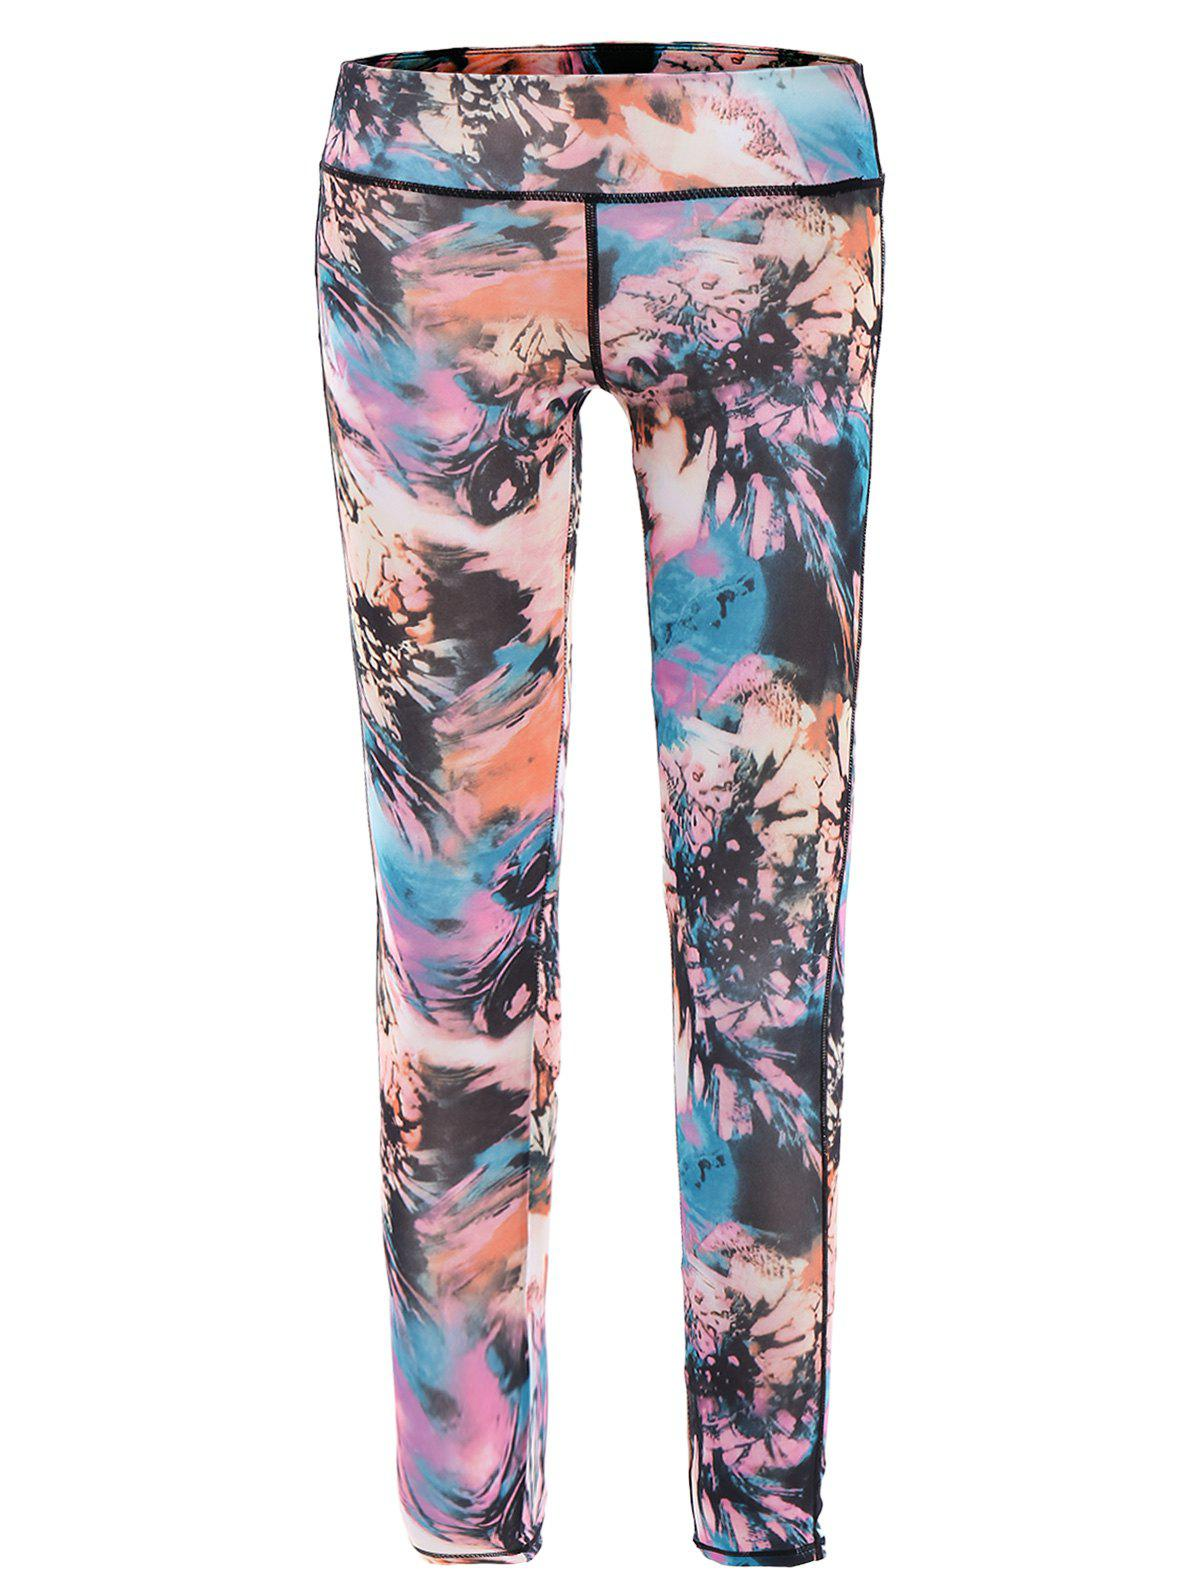 Stylish Elastic Waist Printed Slimming Ninth Women's Gym Pants - COLORMIX S